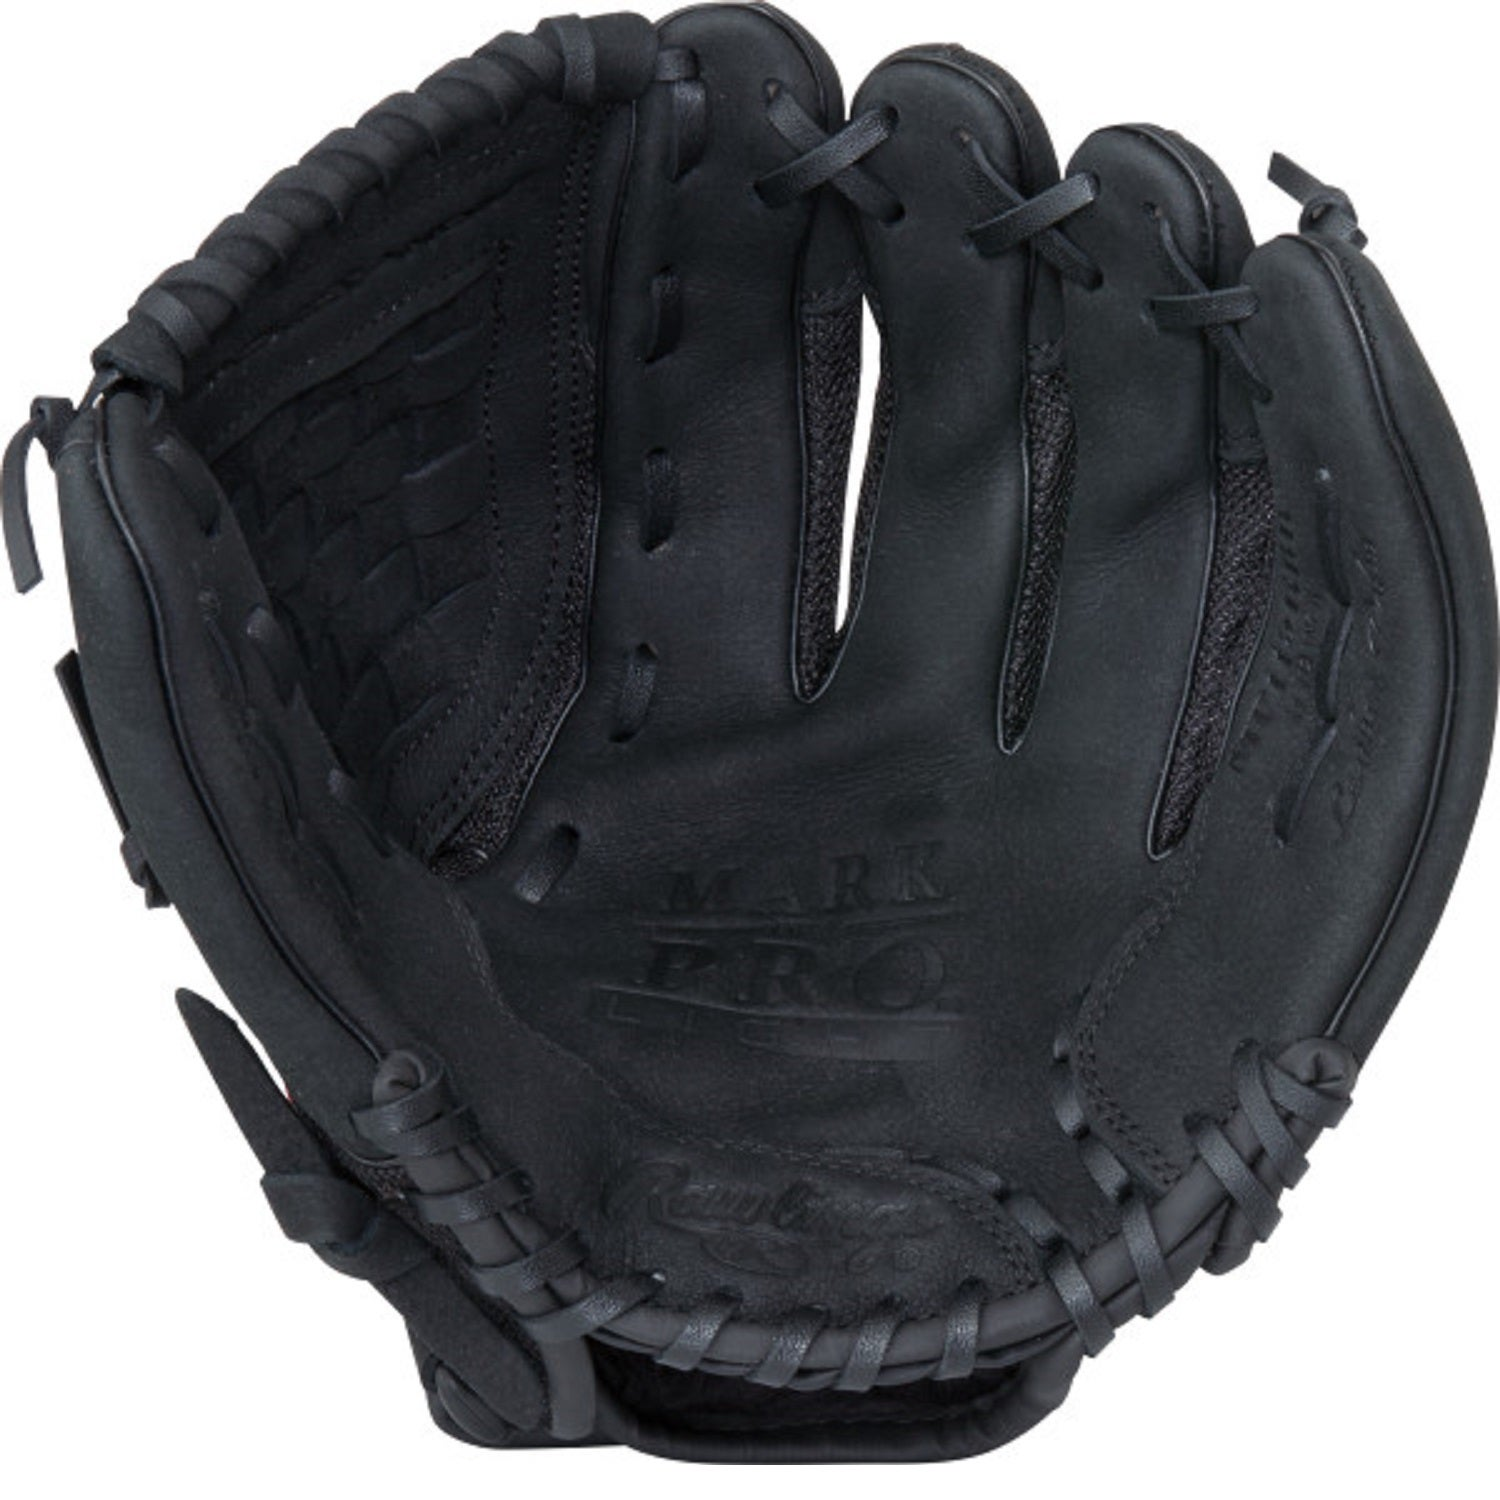 Rawlings Youth Mark of a Pro Light Glove -LHT-11.5 (Left ...